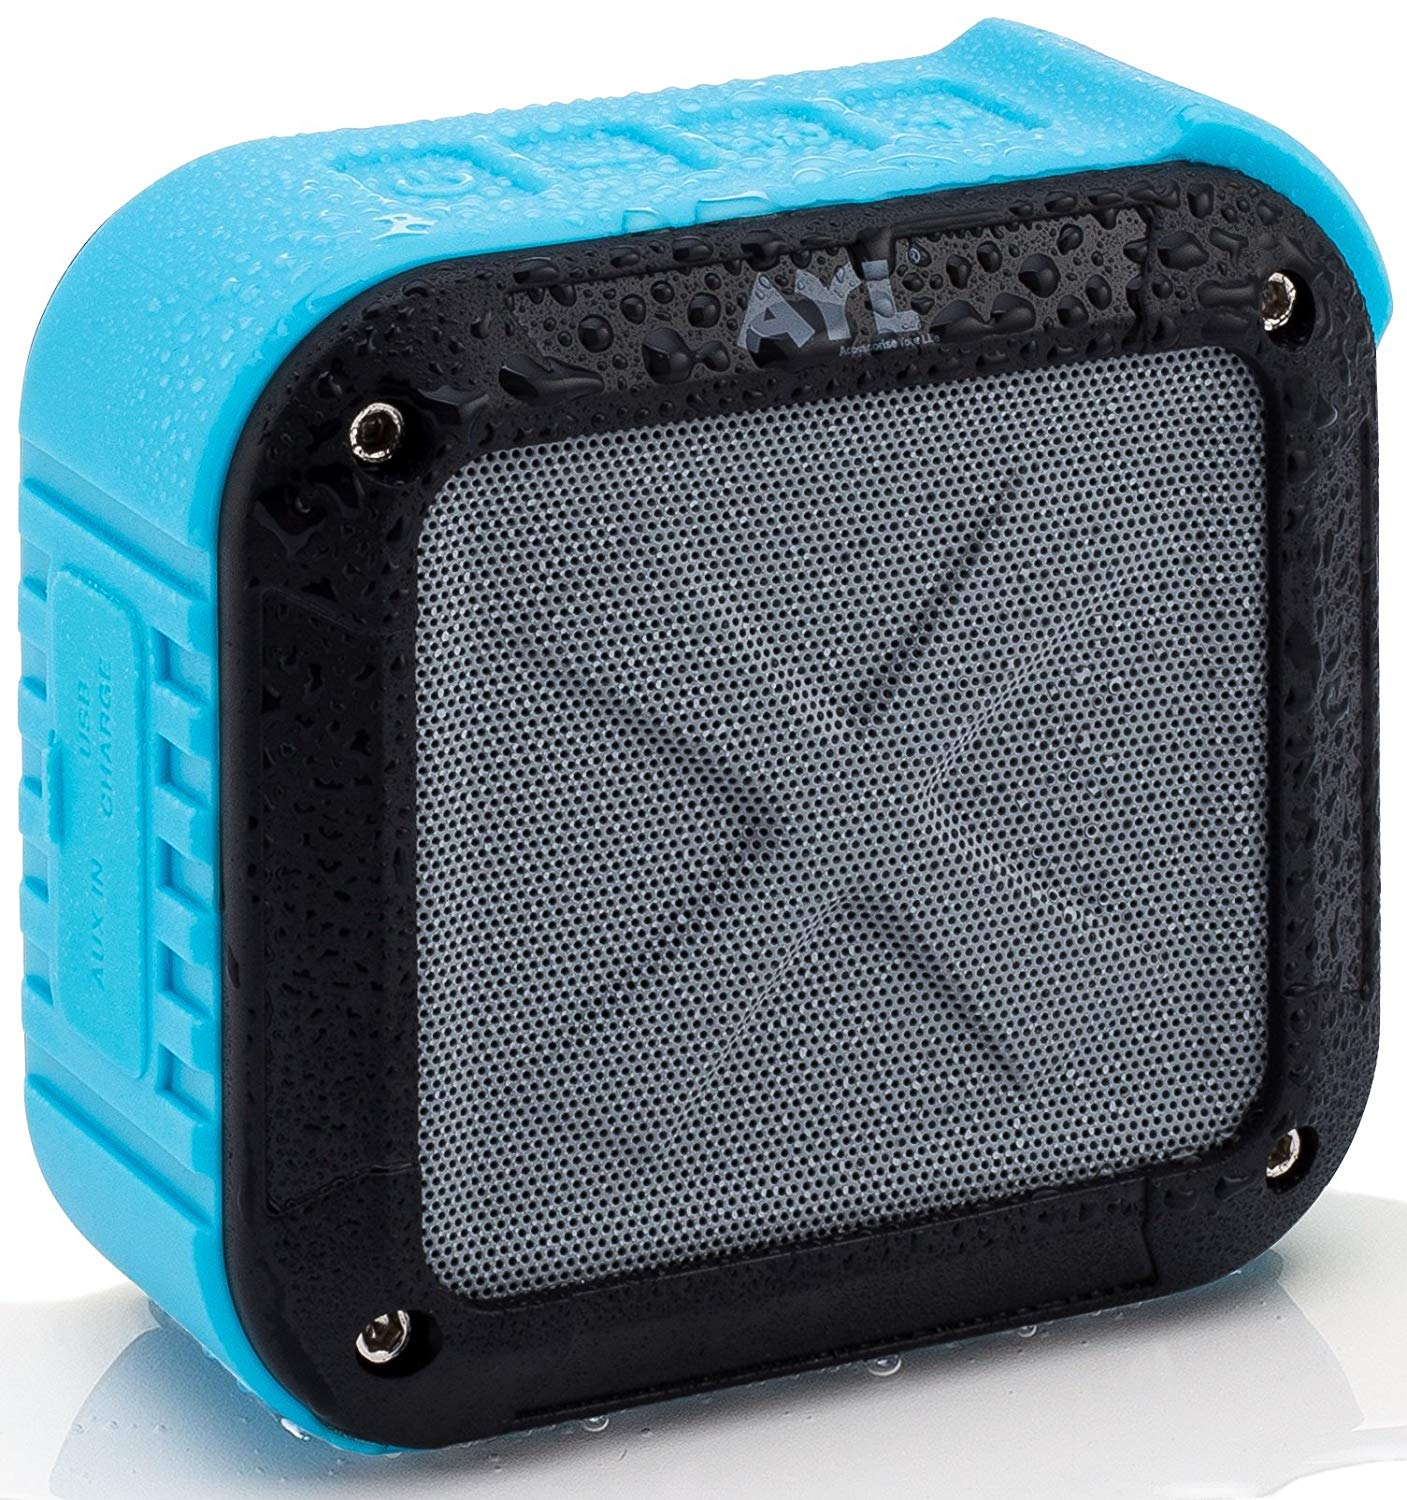 Portable Outdoor and Shower Speaker